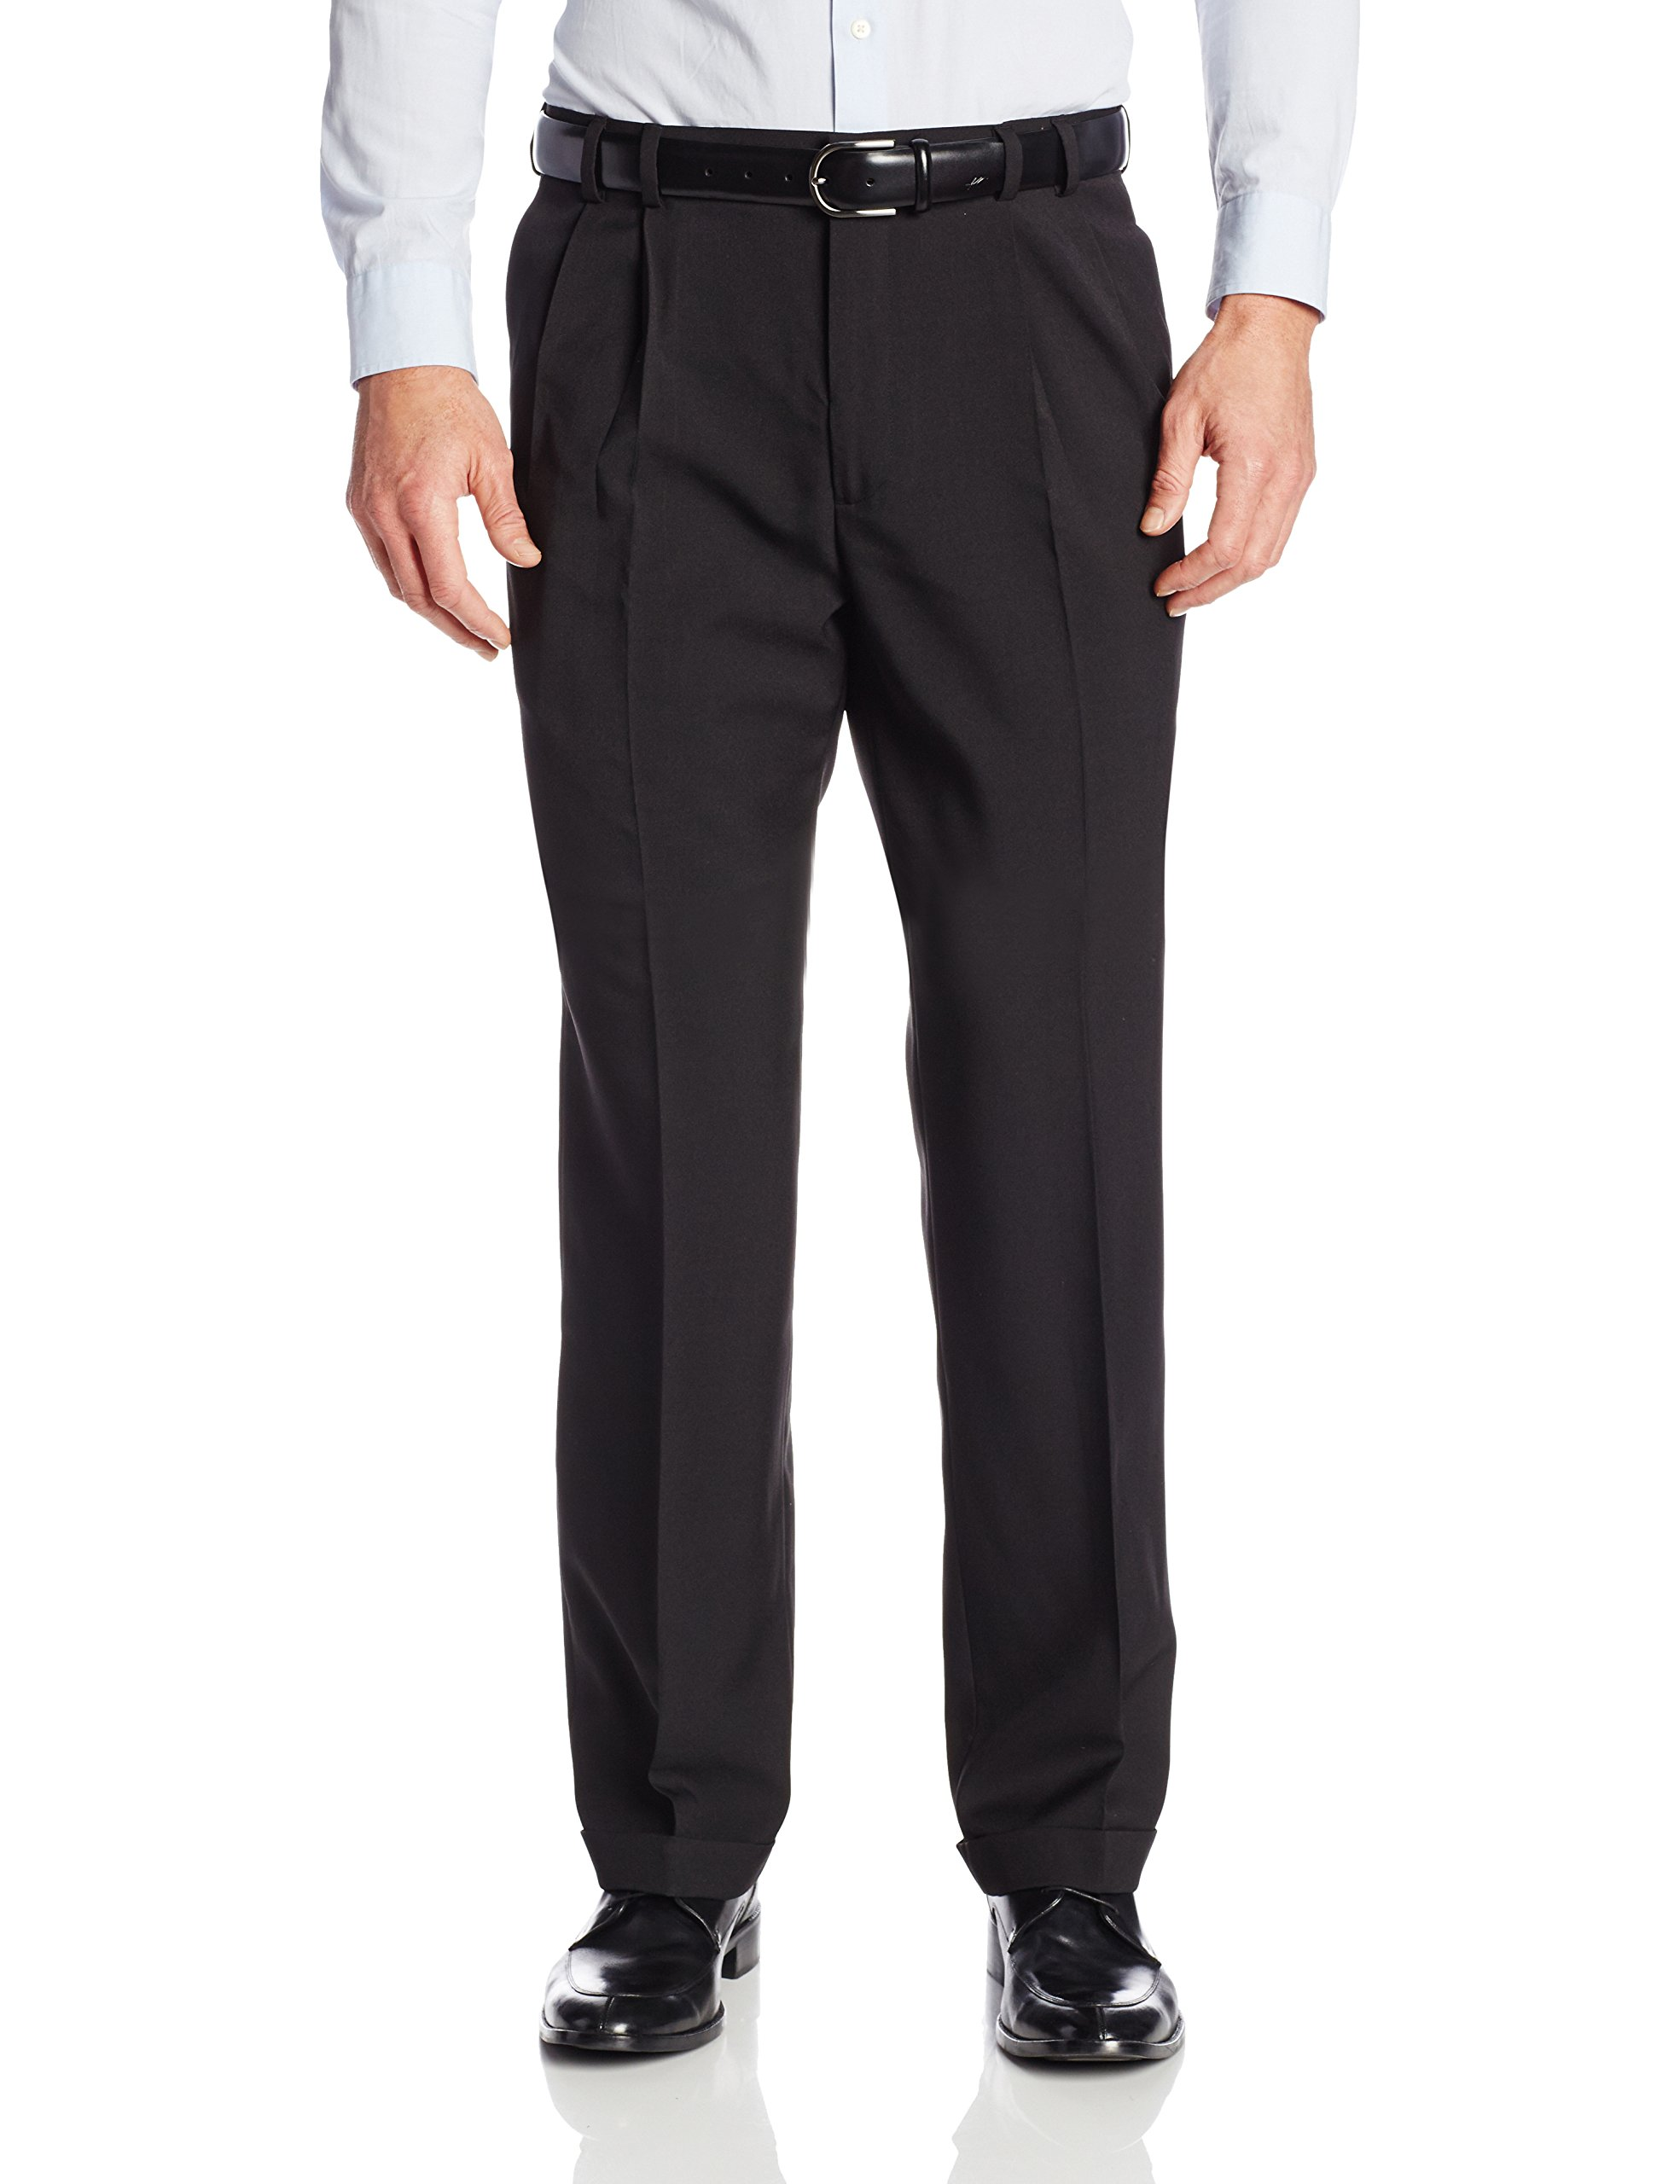 Van Heusen Men's Big & Tall Cuffed Crosshatch Pant, Black, 40W x 34L